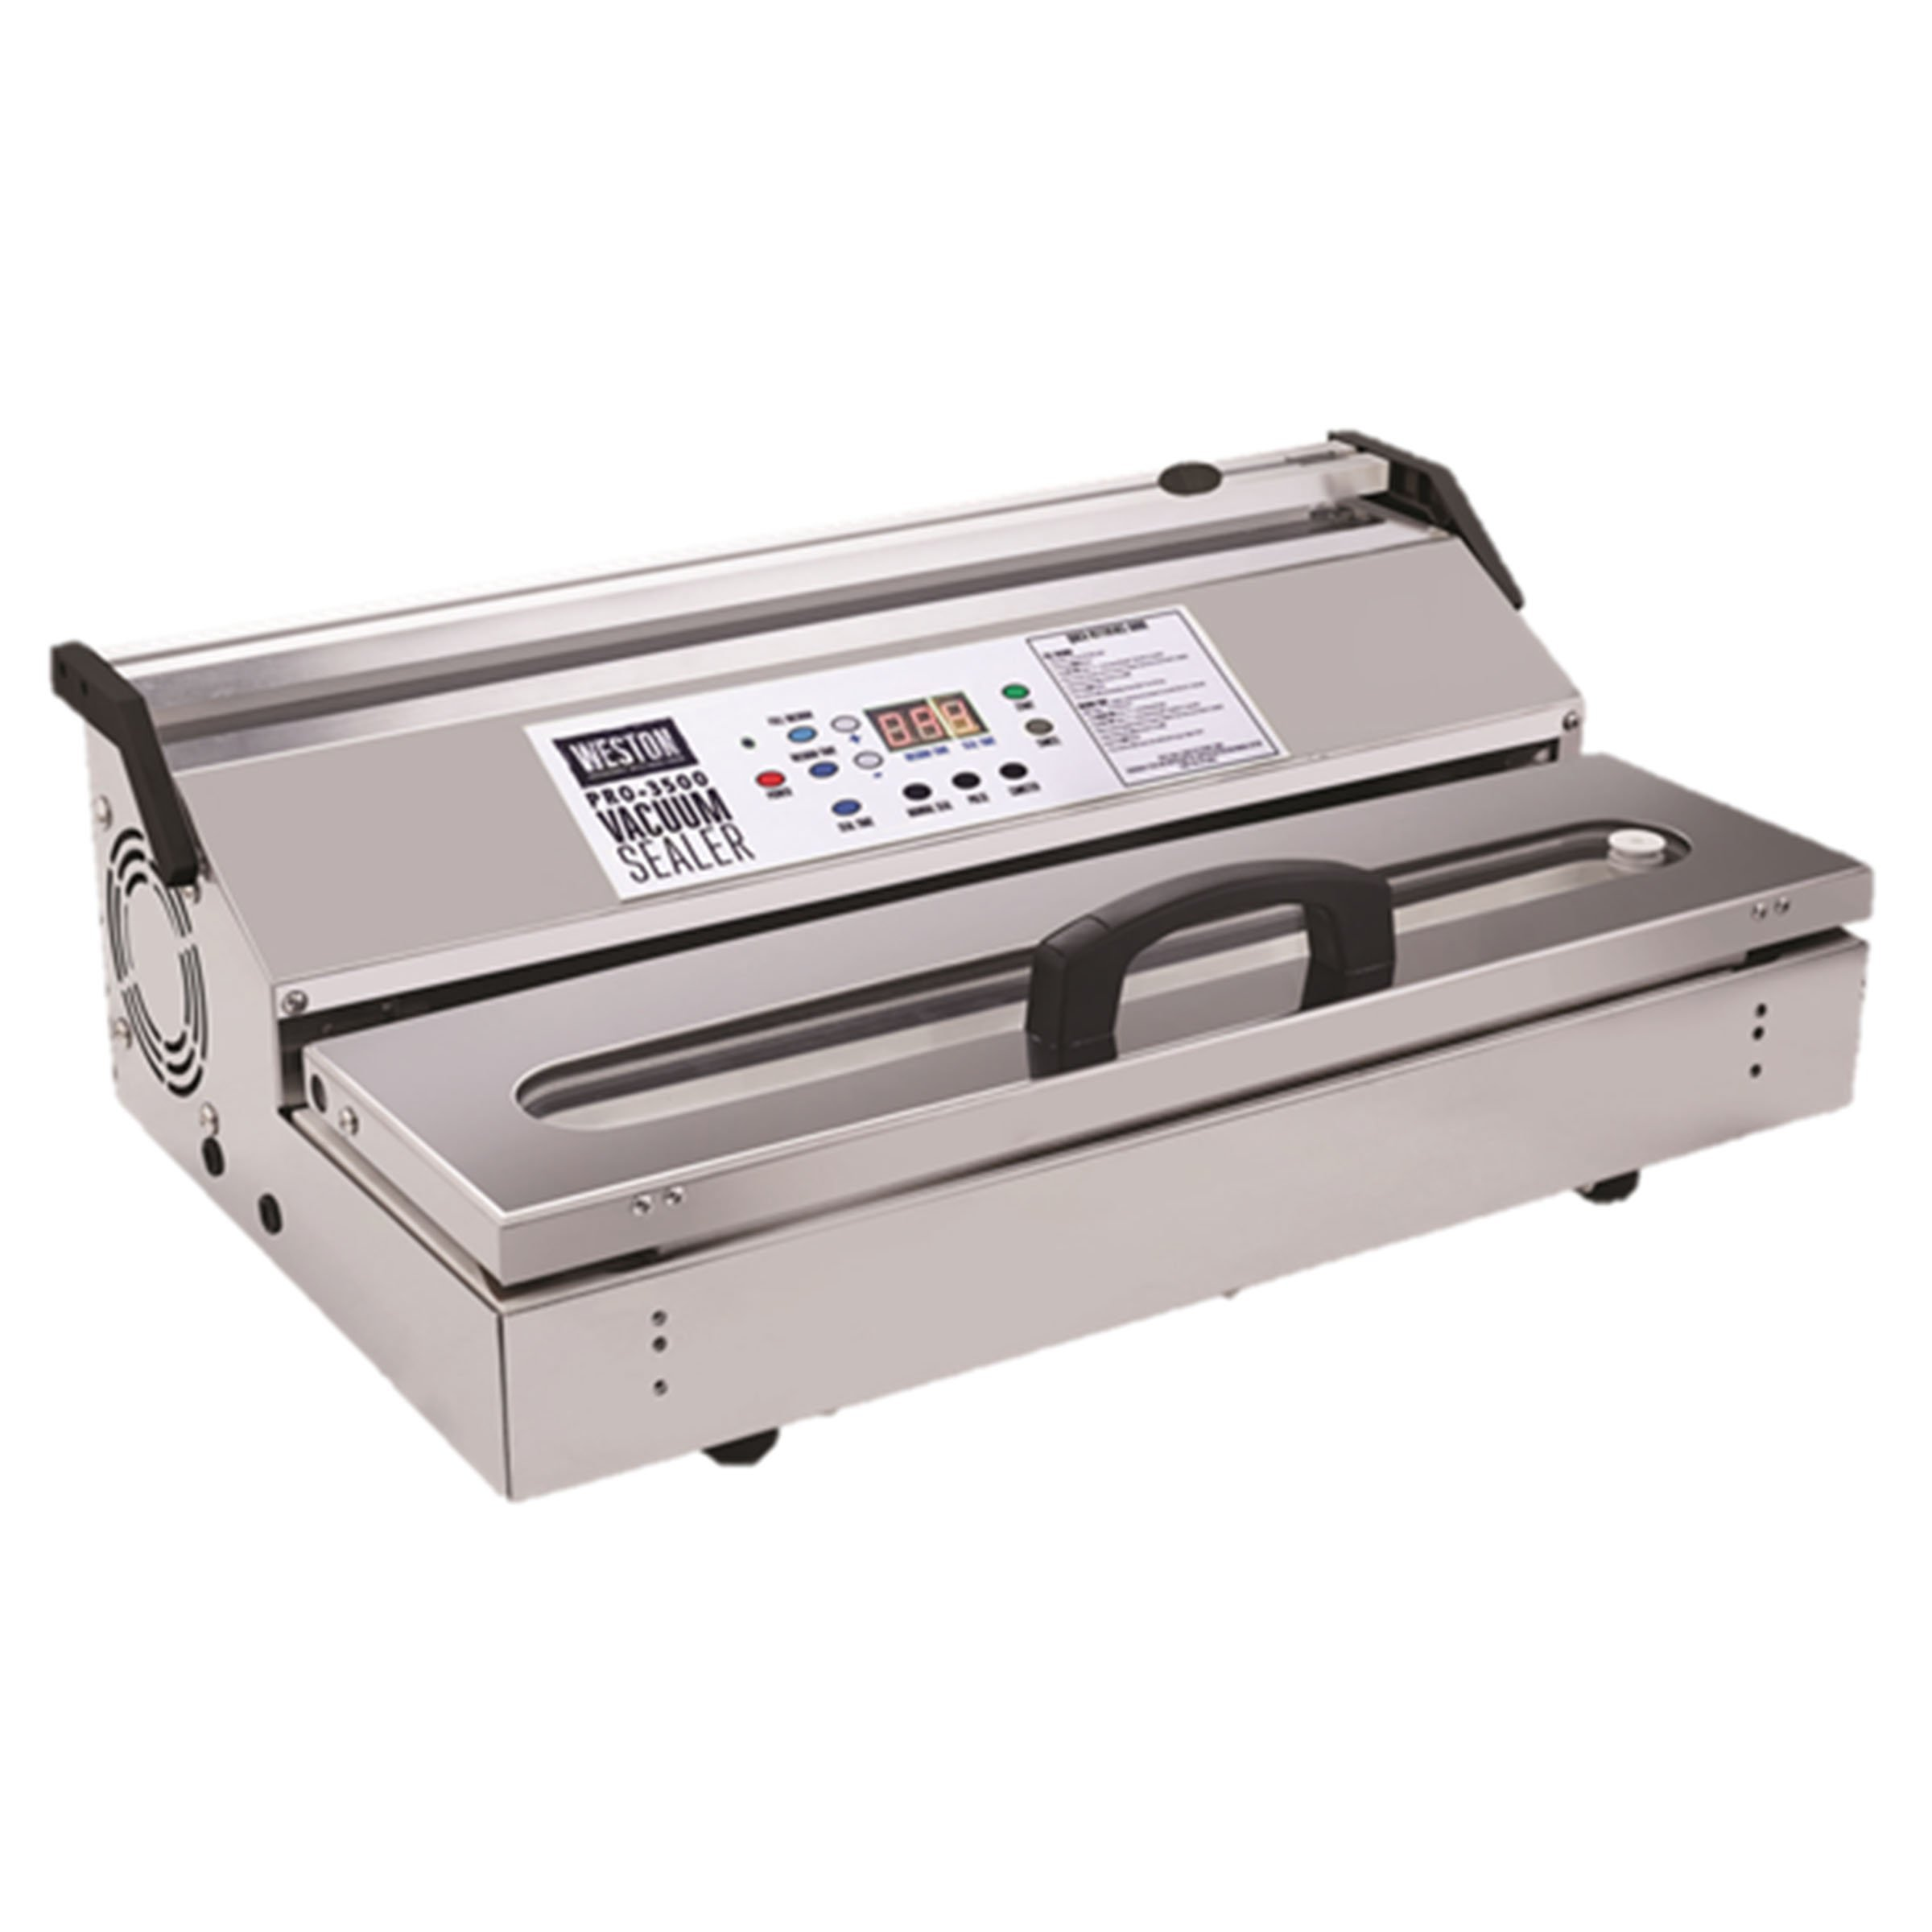 Weston 65-0901-w Pro-3500 Commercial Grade Vacuum Sealer, 15'' bar, Stainless Steel by Weston